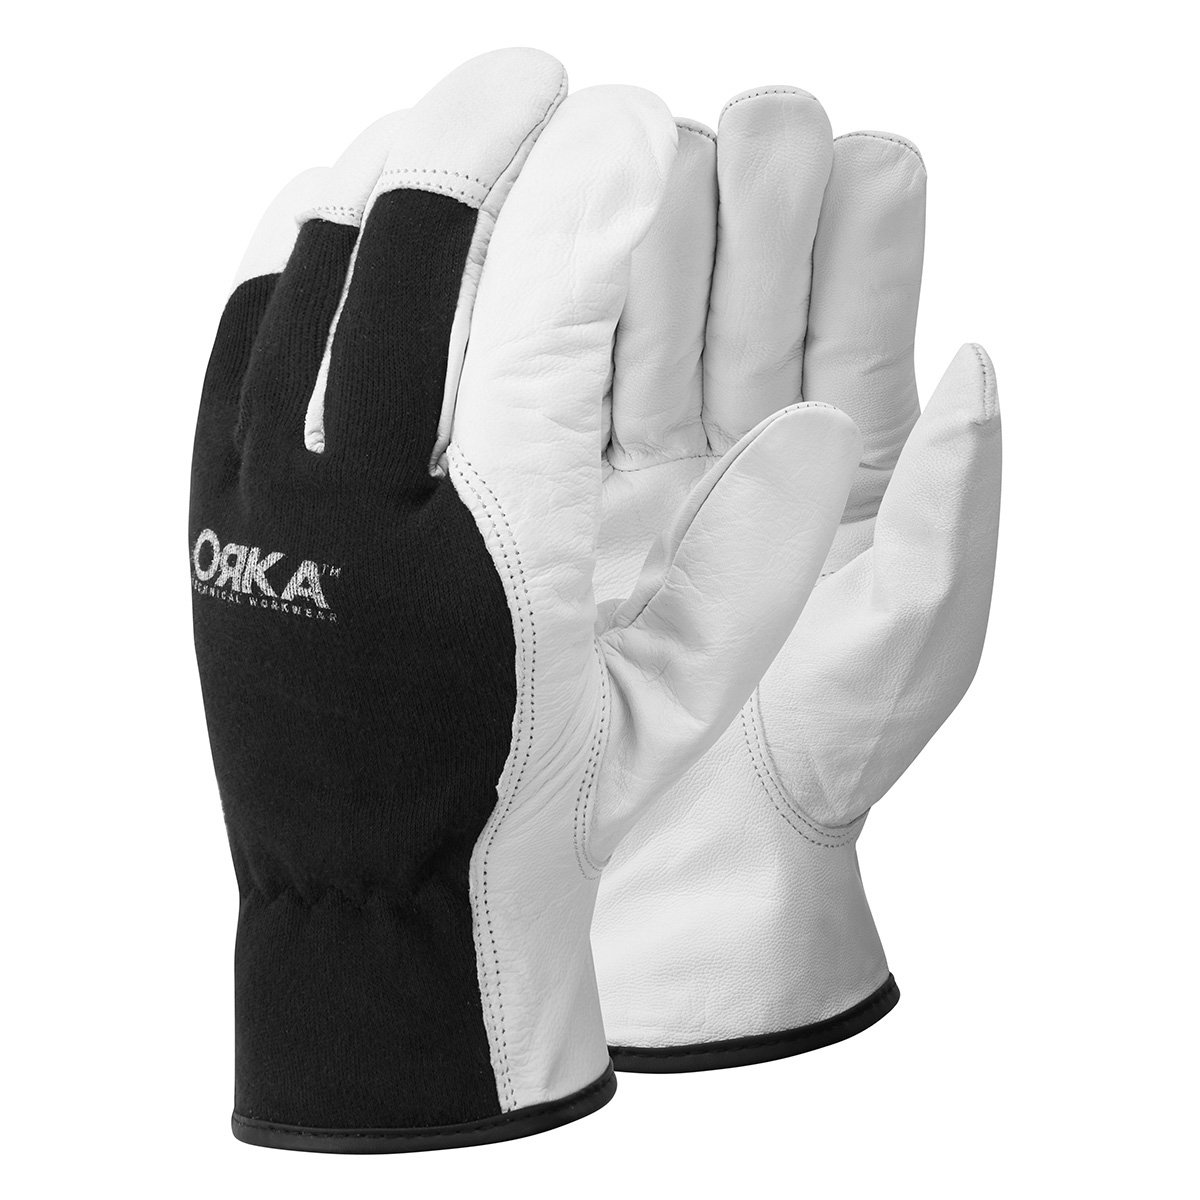 00 2949 0 10 ORKA WHITE UNLINED DRIVERS GLOVE WHITE Front copy